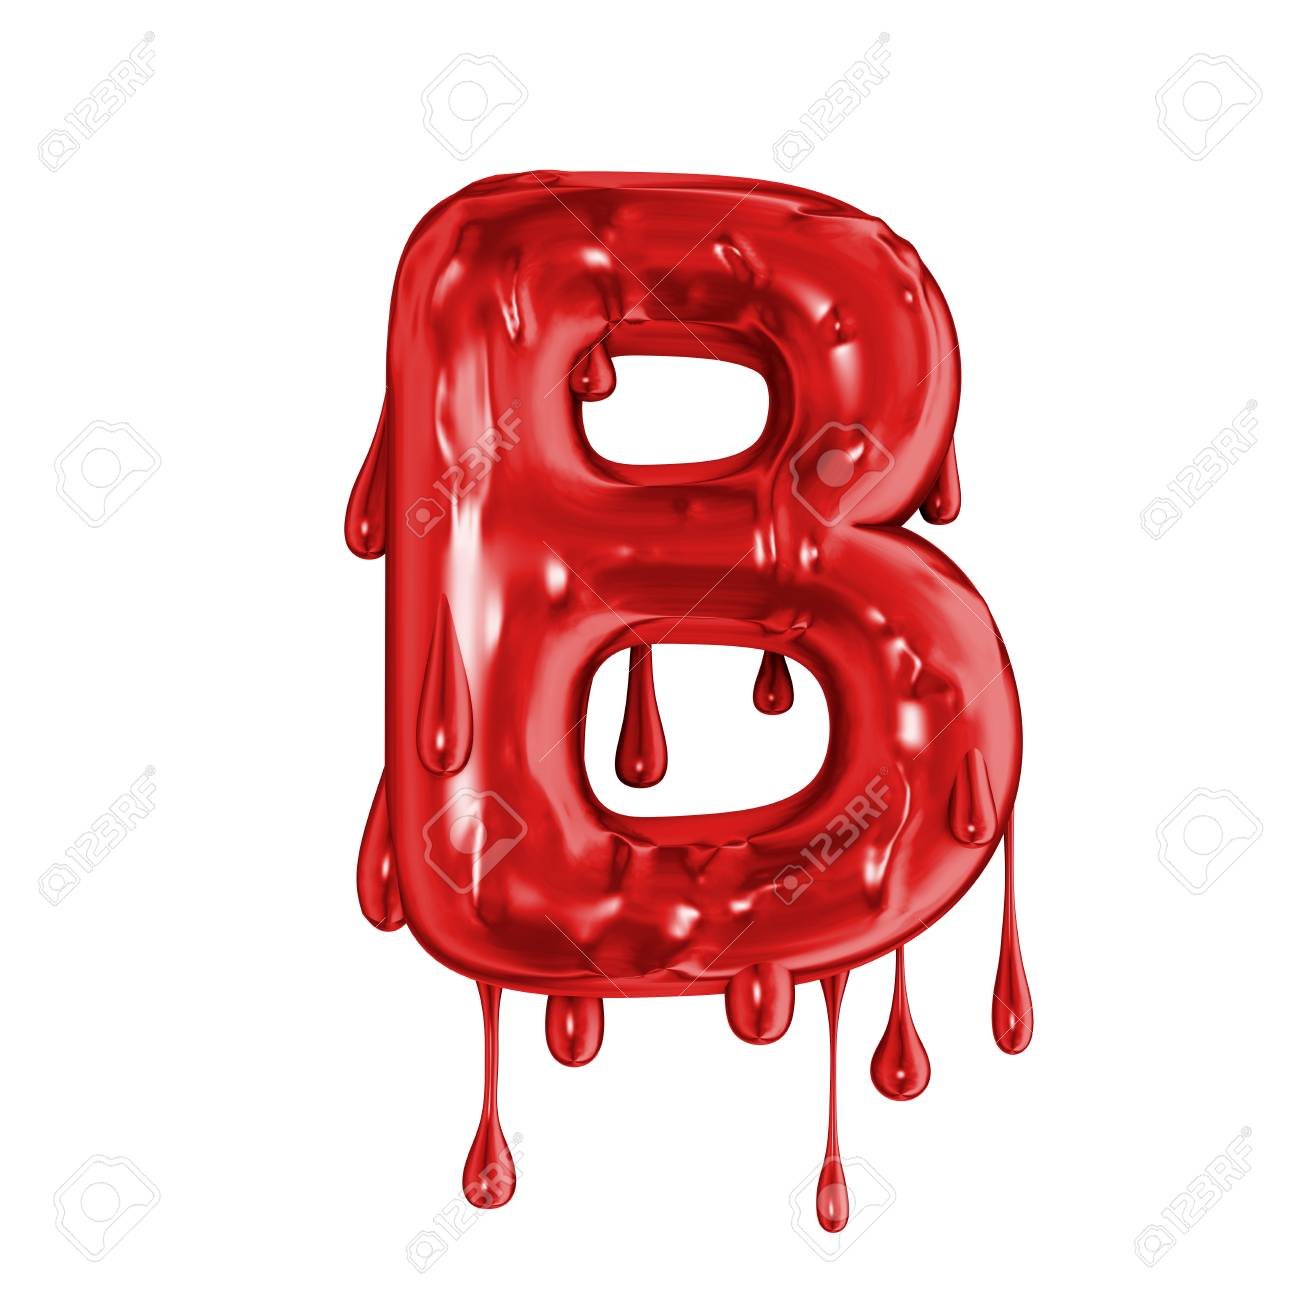 Image result for letter B horror